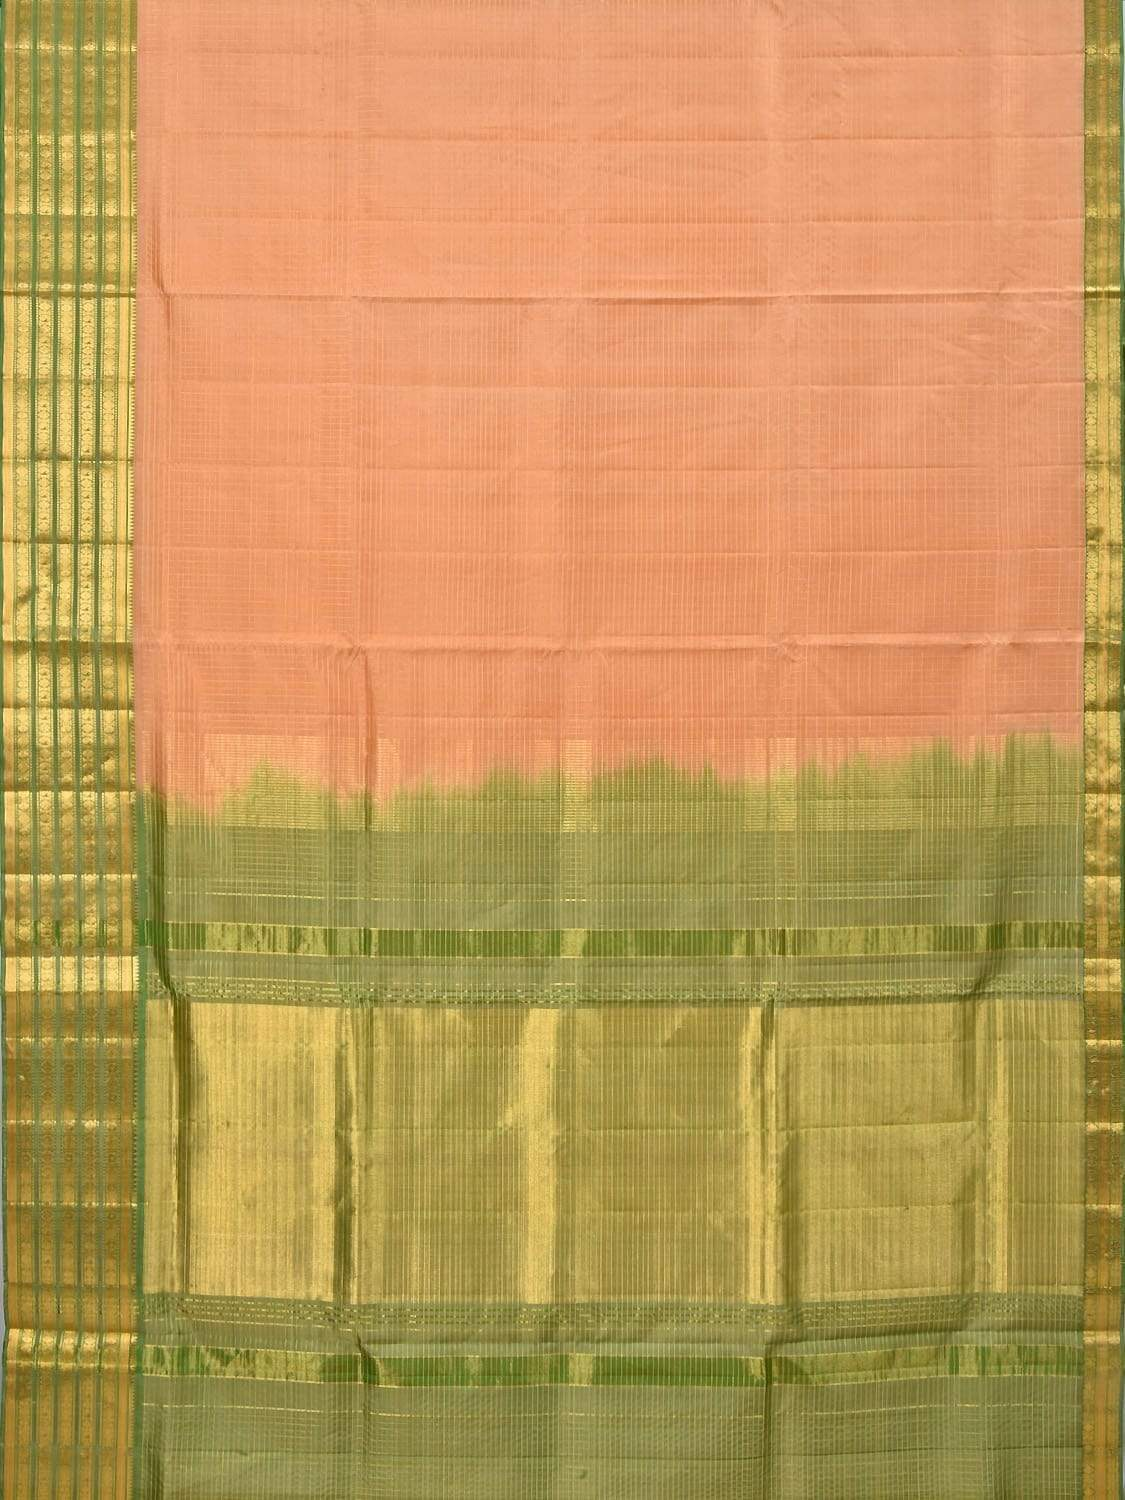 Peach Gadwal Silk Handloom Saree with Checks and Border Design G0236